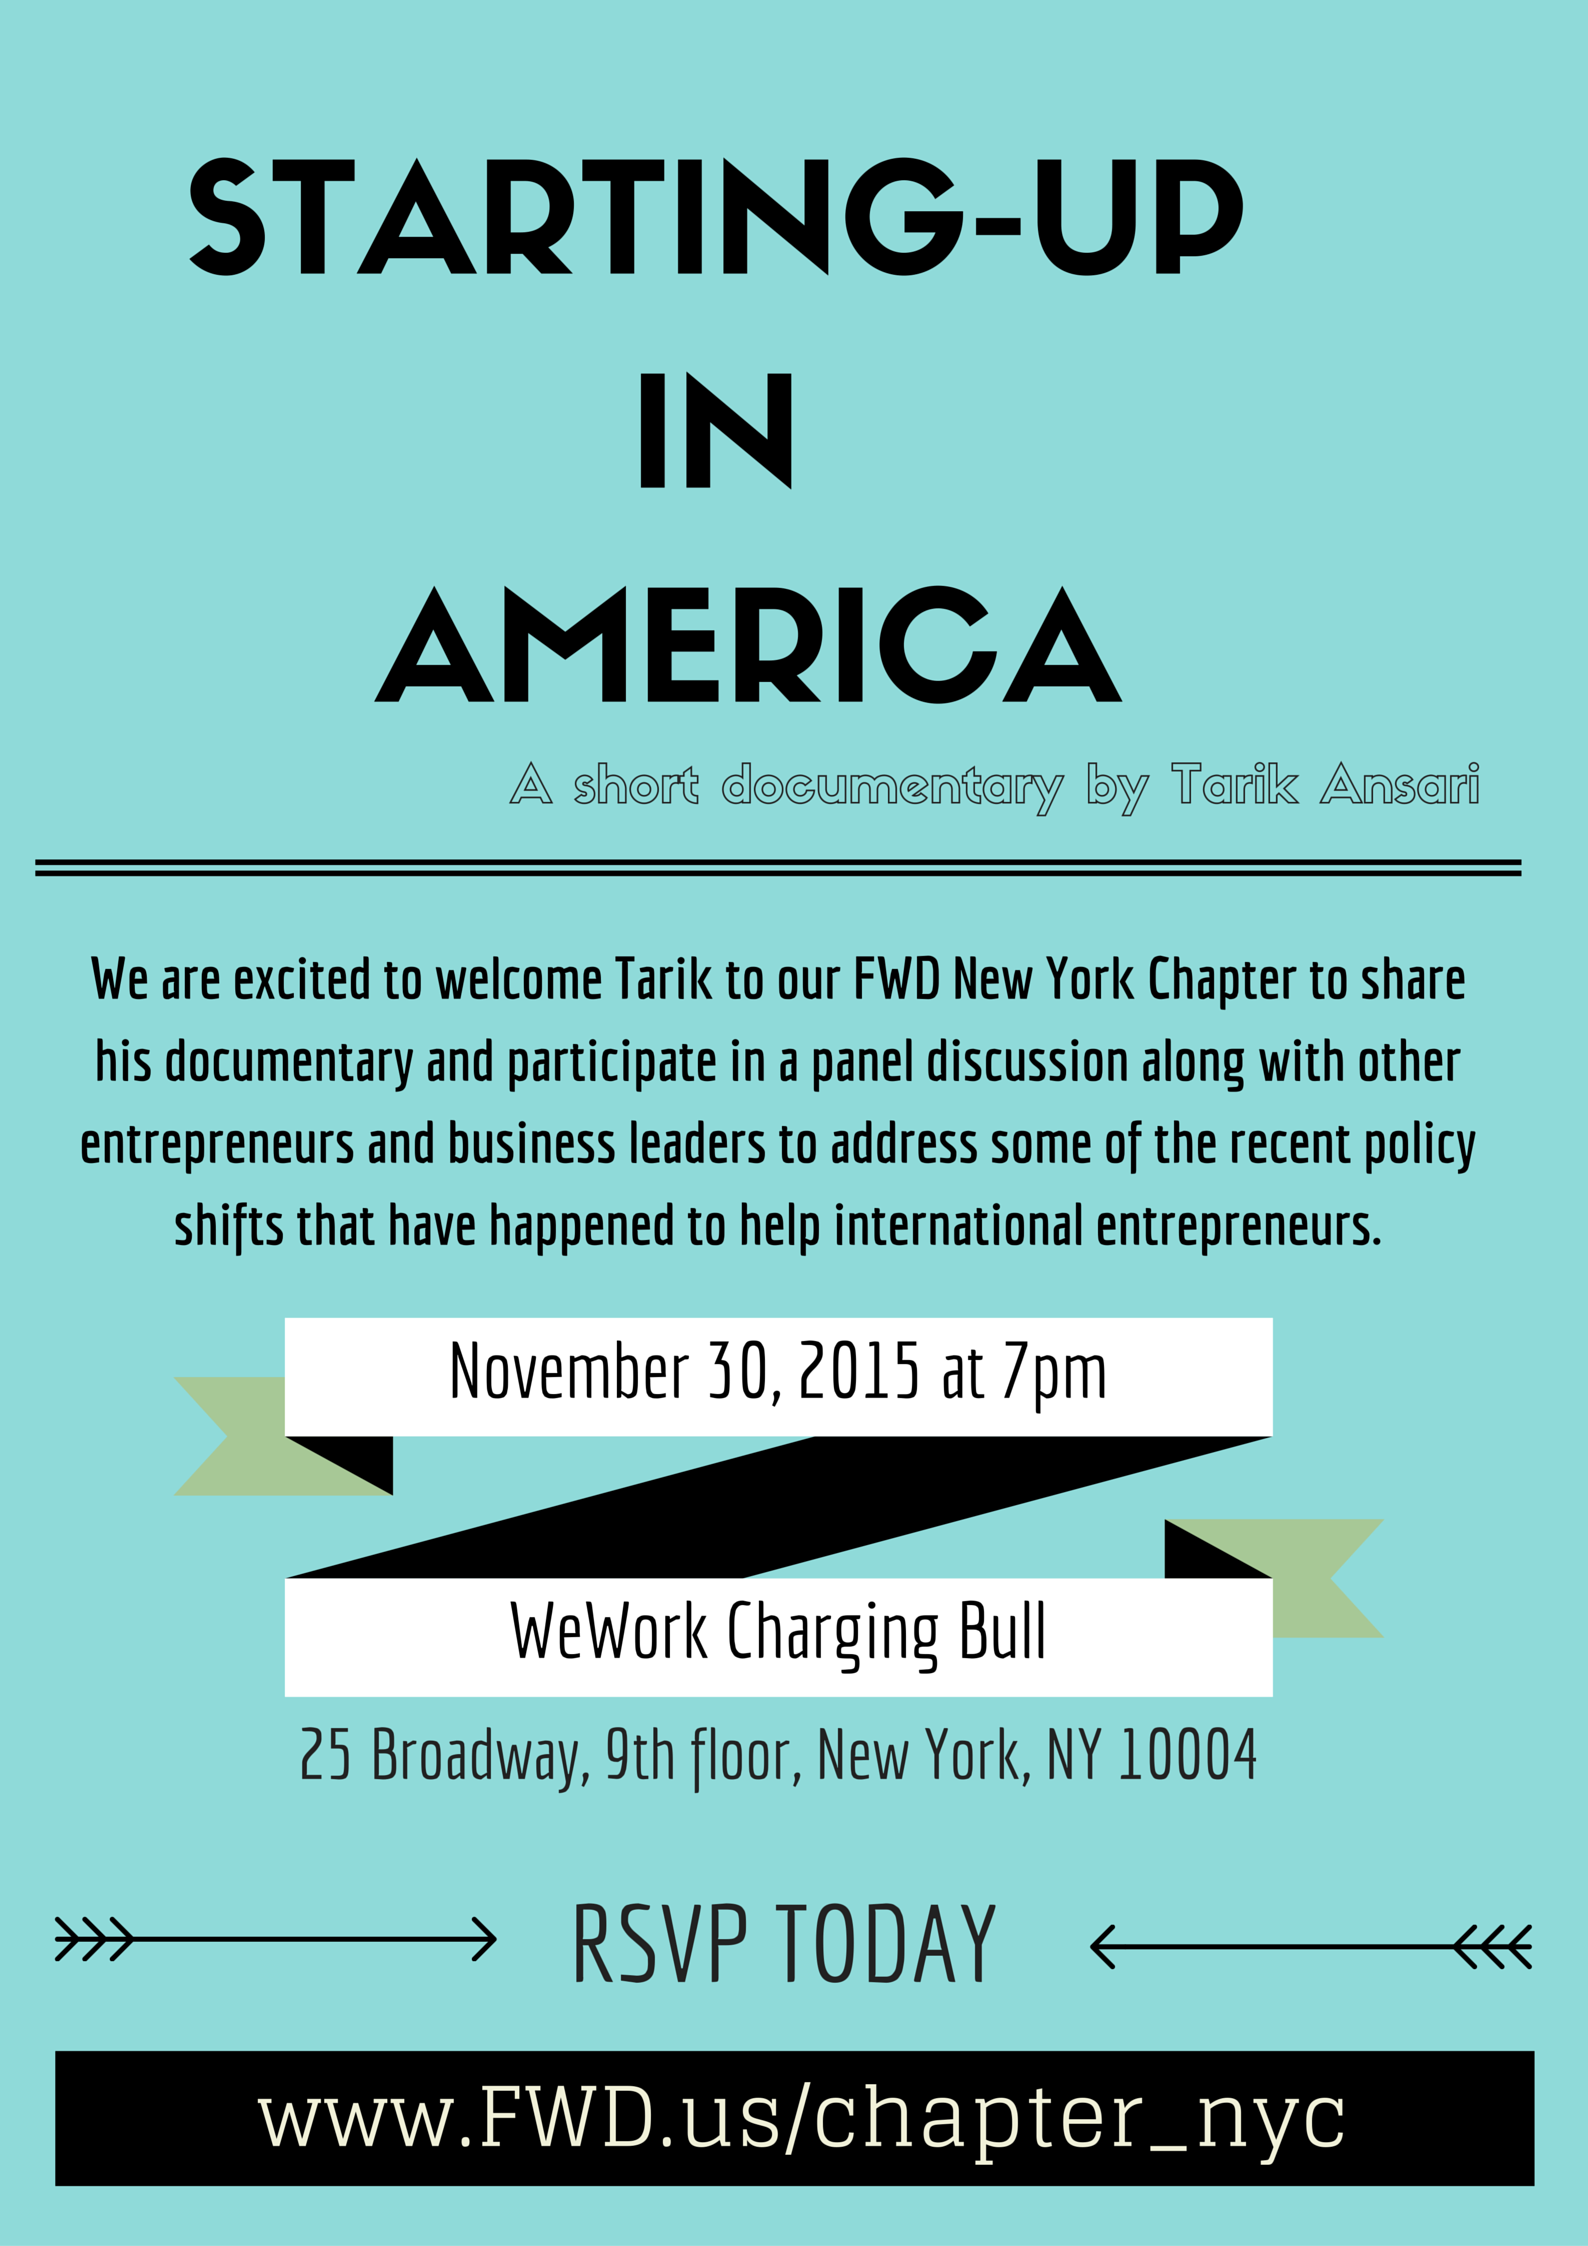 Starting-Up in America flyer front